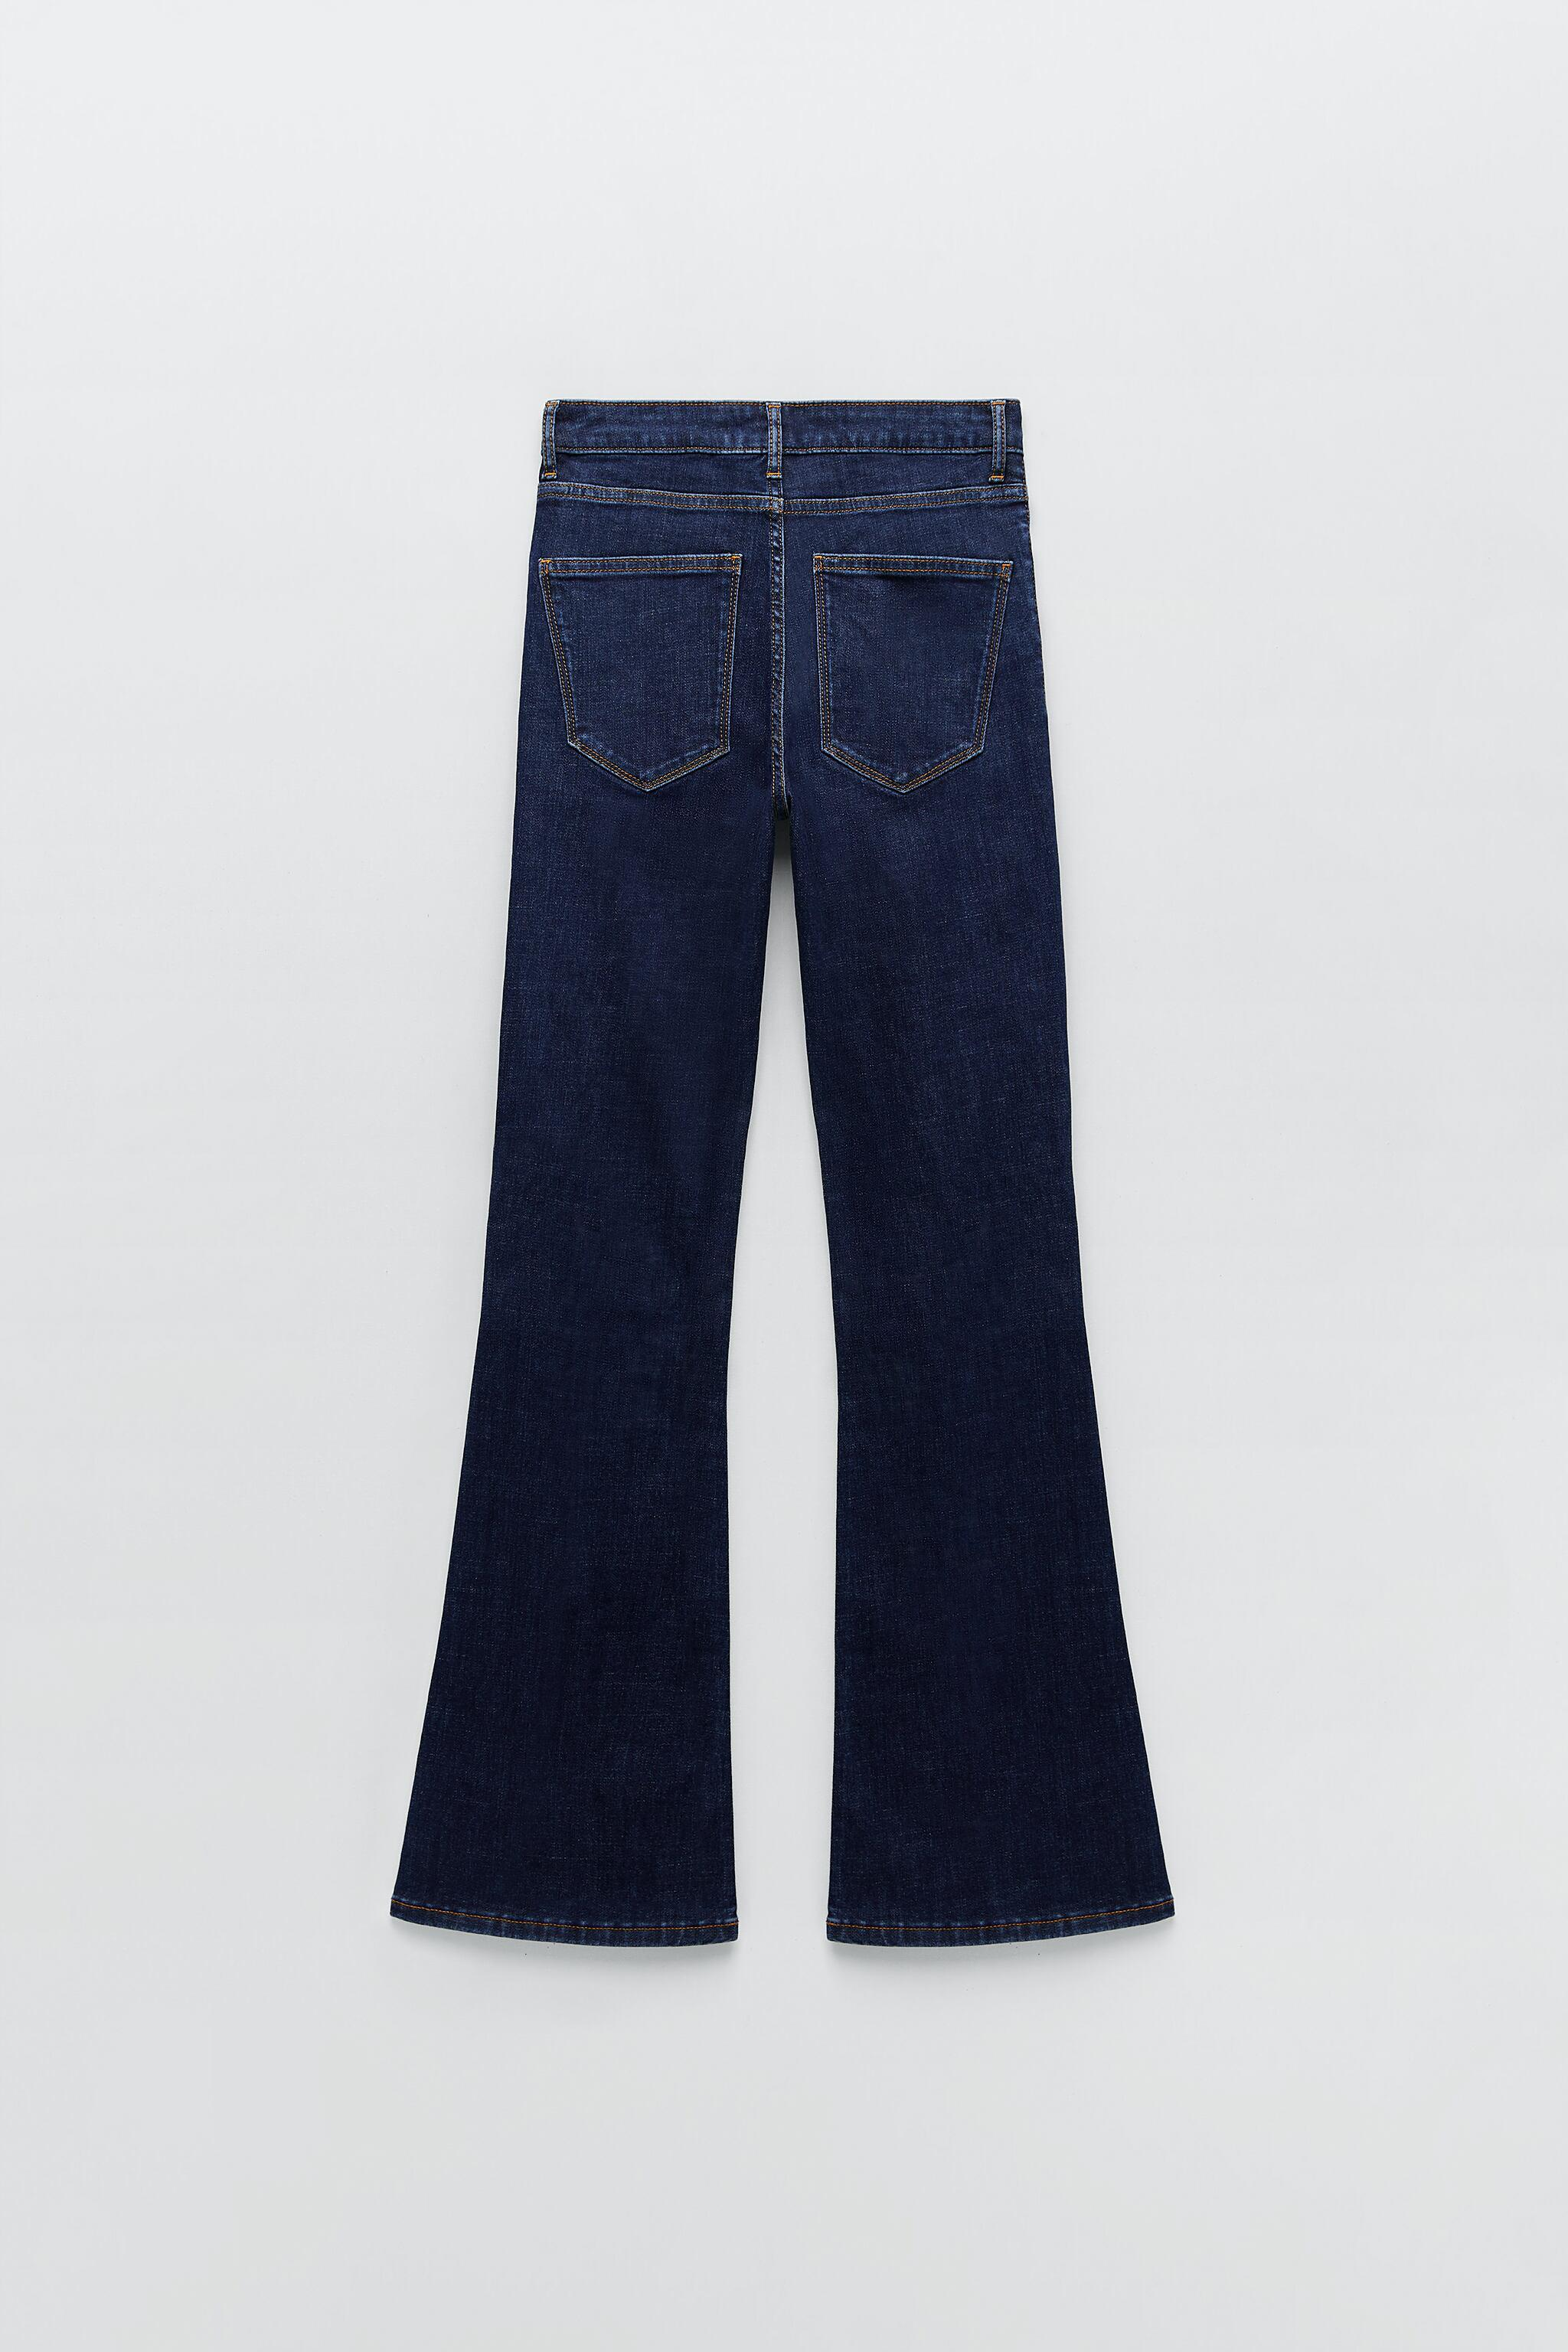 ZW THE SKINNY FLARE JEANS 8